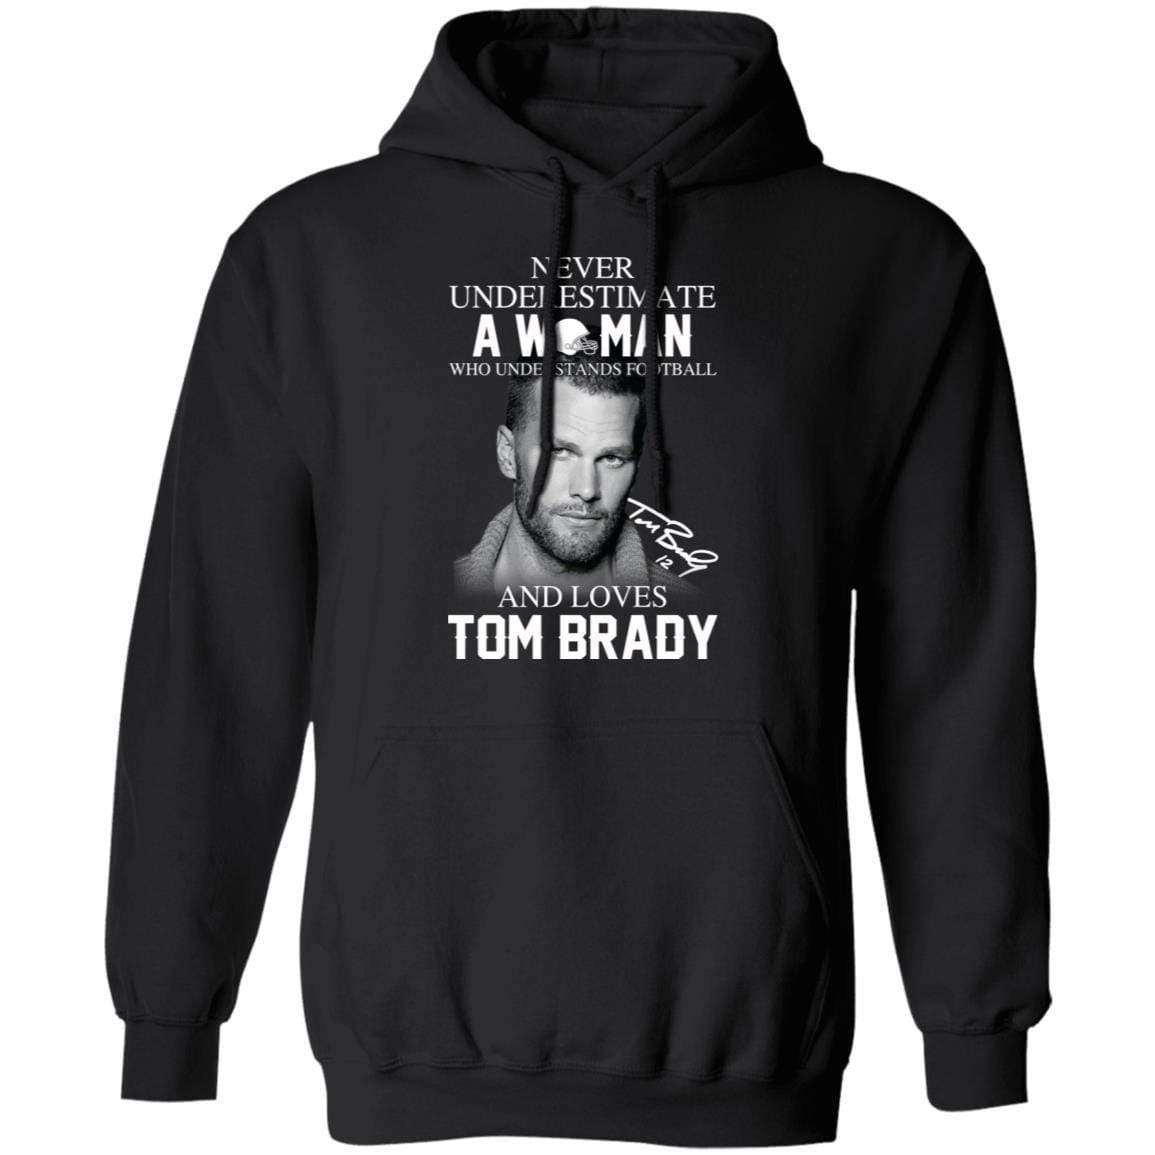 Never Underestimate A Woman Who Understands Football And Loves Tom Brady T-Shirts, Hoodies 541-4740-86894526-23087 - Tee Ript